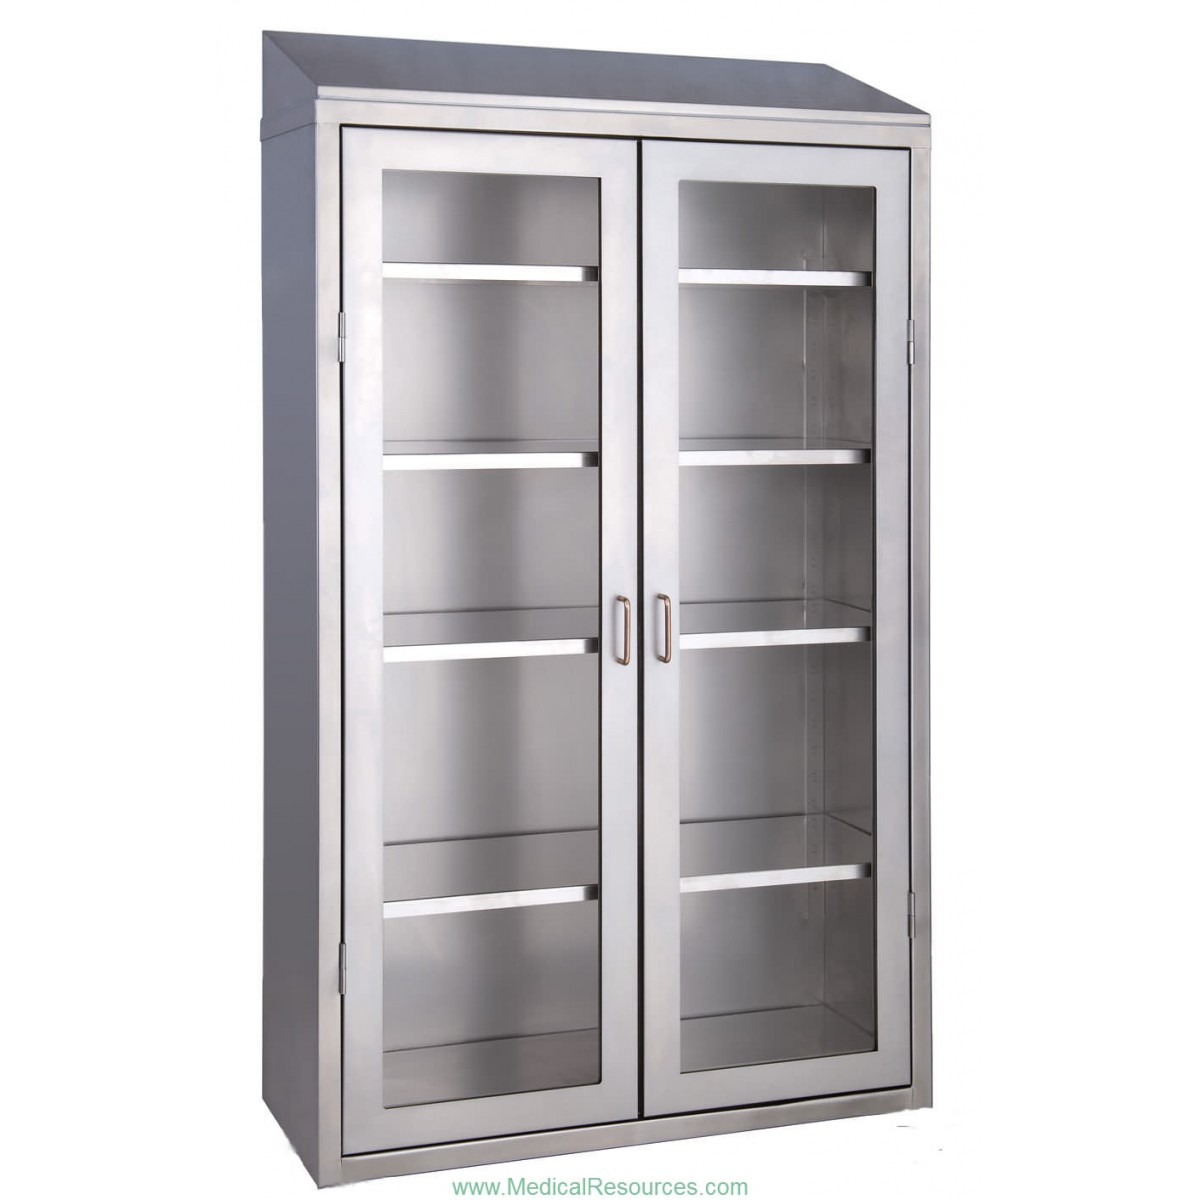 Kitchen Cabinets Stand Alone: Medwurx_stainless_steel_stand-alone_instrument_supply